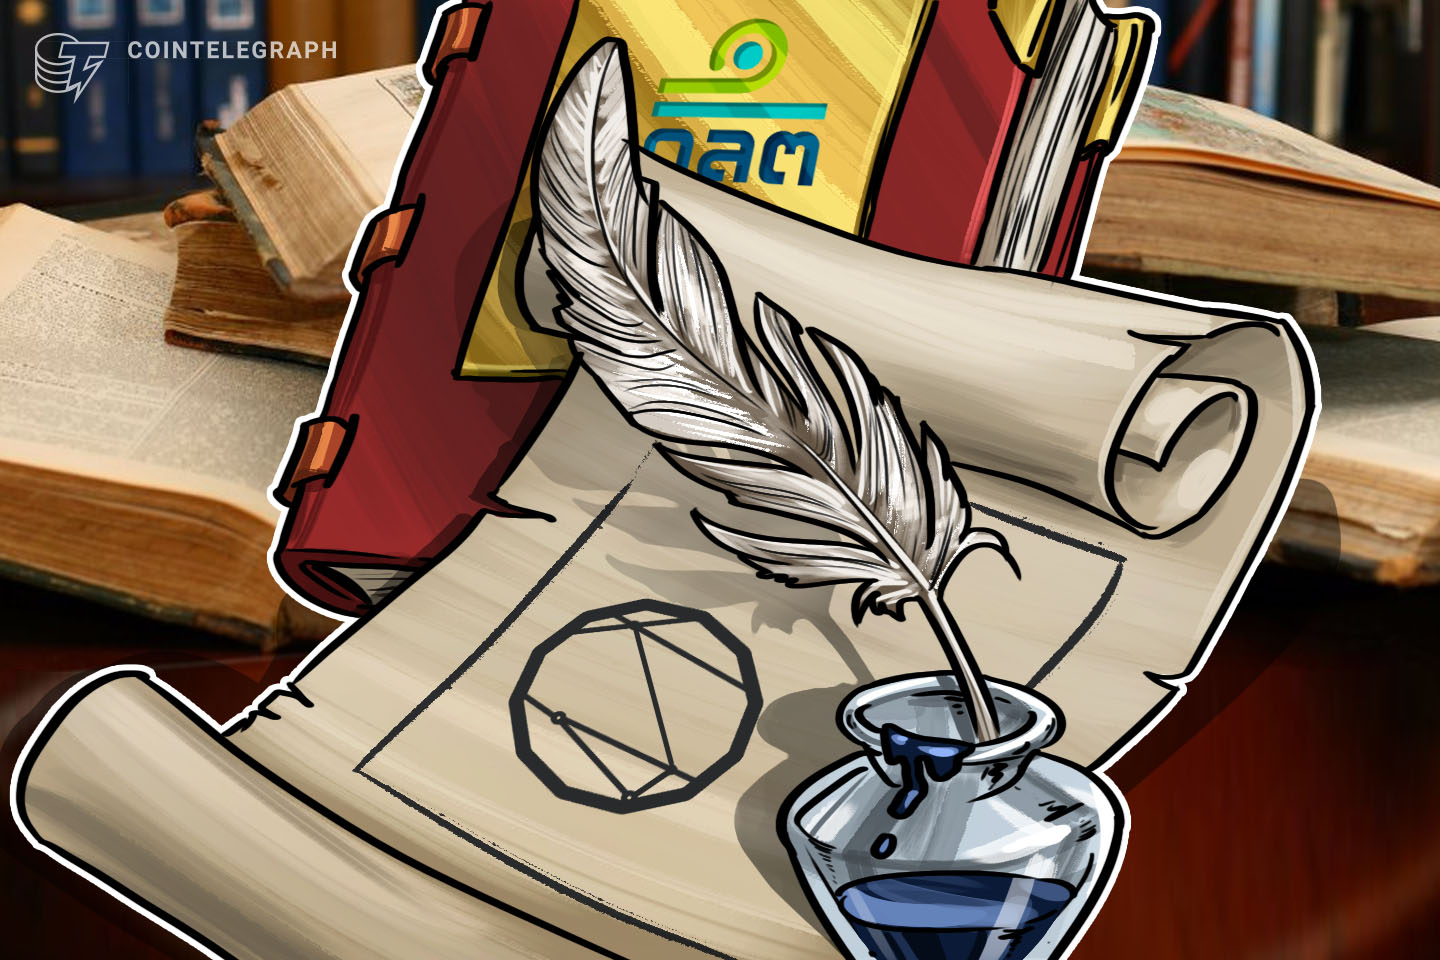 Thai SEC bans exchanges from handling certain token types including NFTs